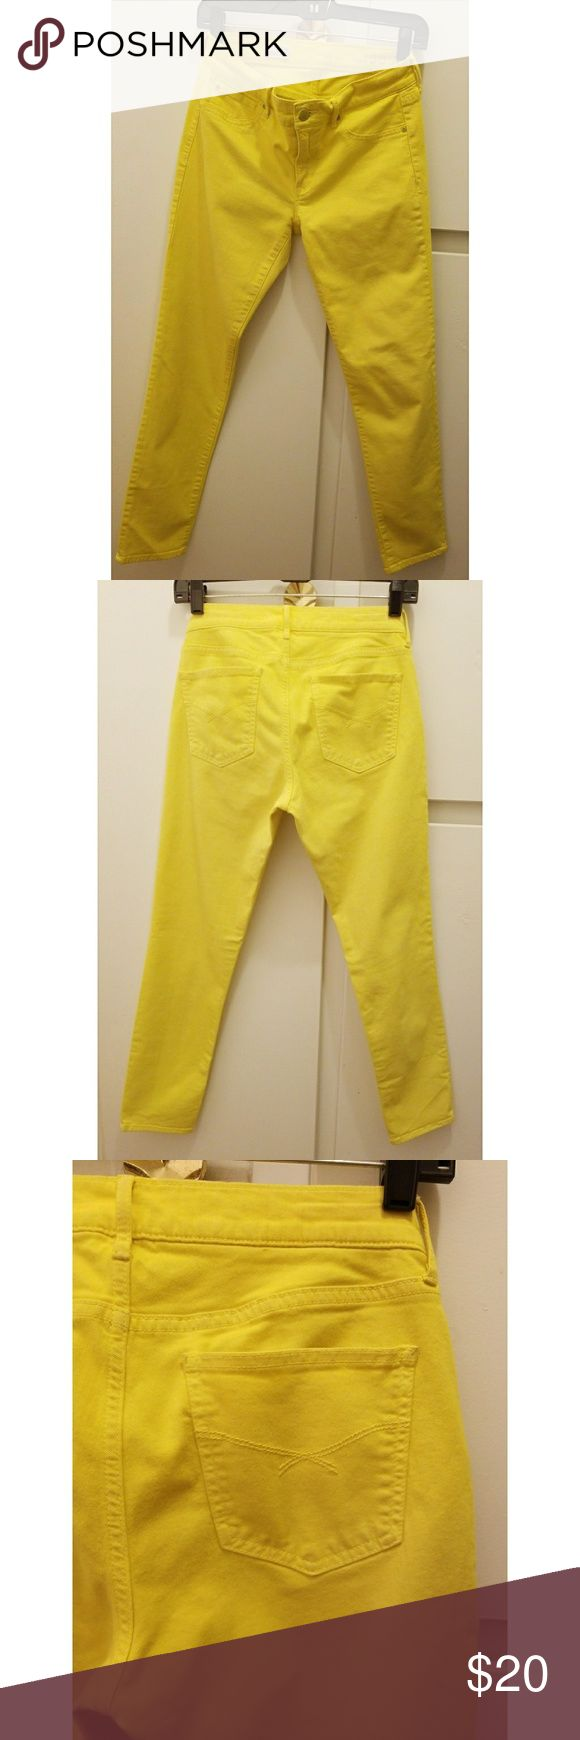 Gap Jeans Super cool Gap Denim Jeans in Neon Yellow with great stetch in size 27/ 4r. Super comfy jeans that can bw work with a tee oe tank for day and/or night wear.                     #BeFashion #RENVNTFashion GAP Pants